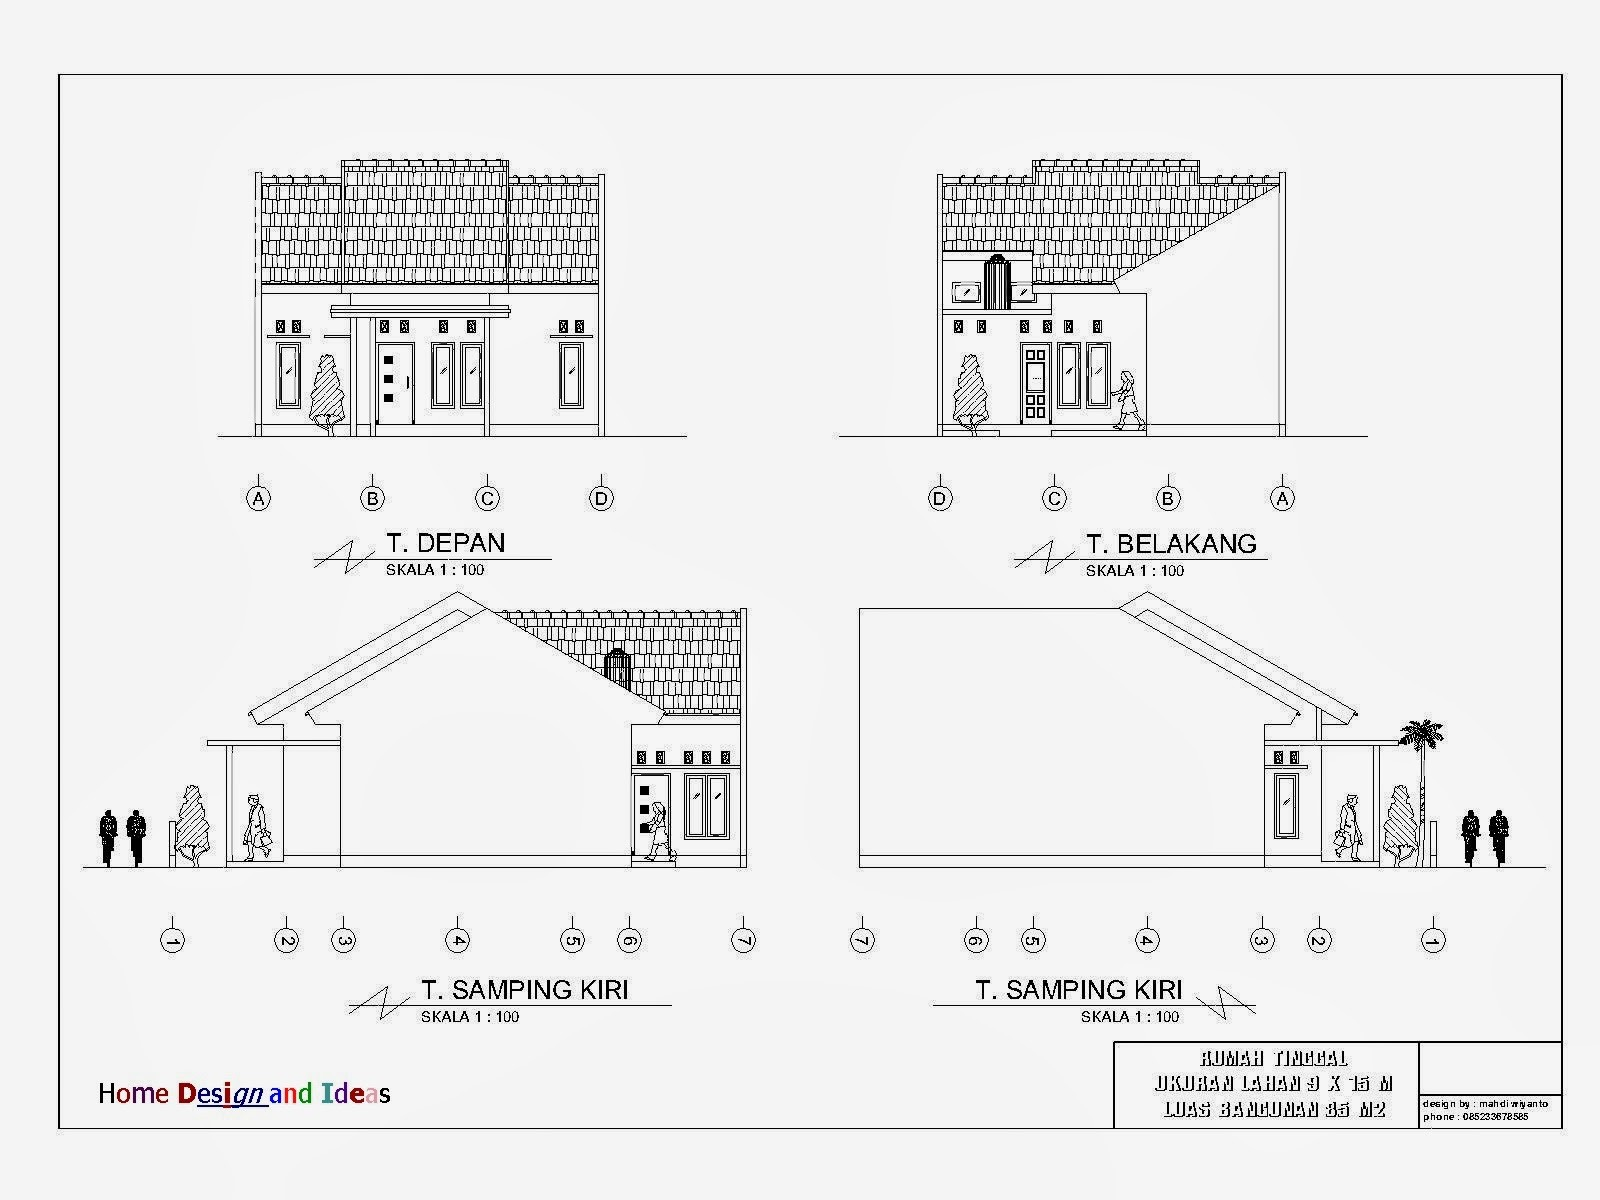 Denah Rumah Tinggal 9 X 15 M Home Design And Ideas